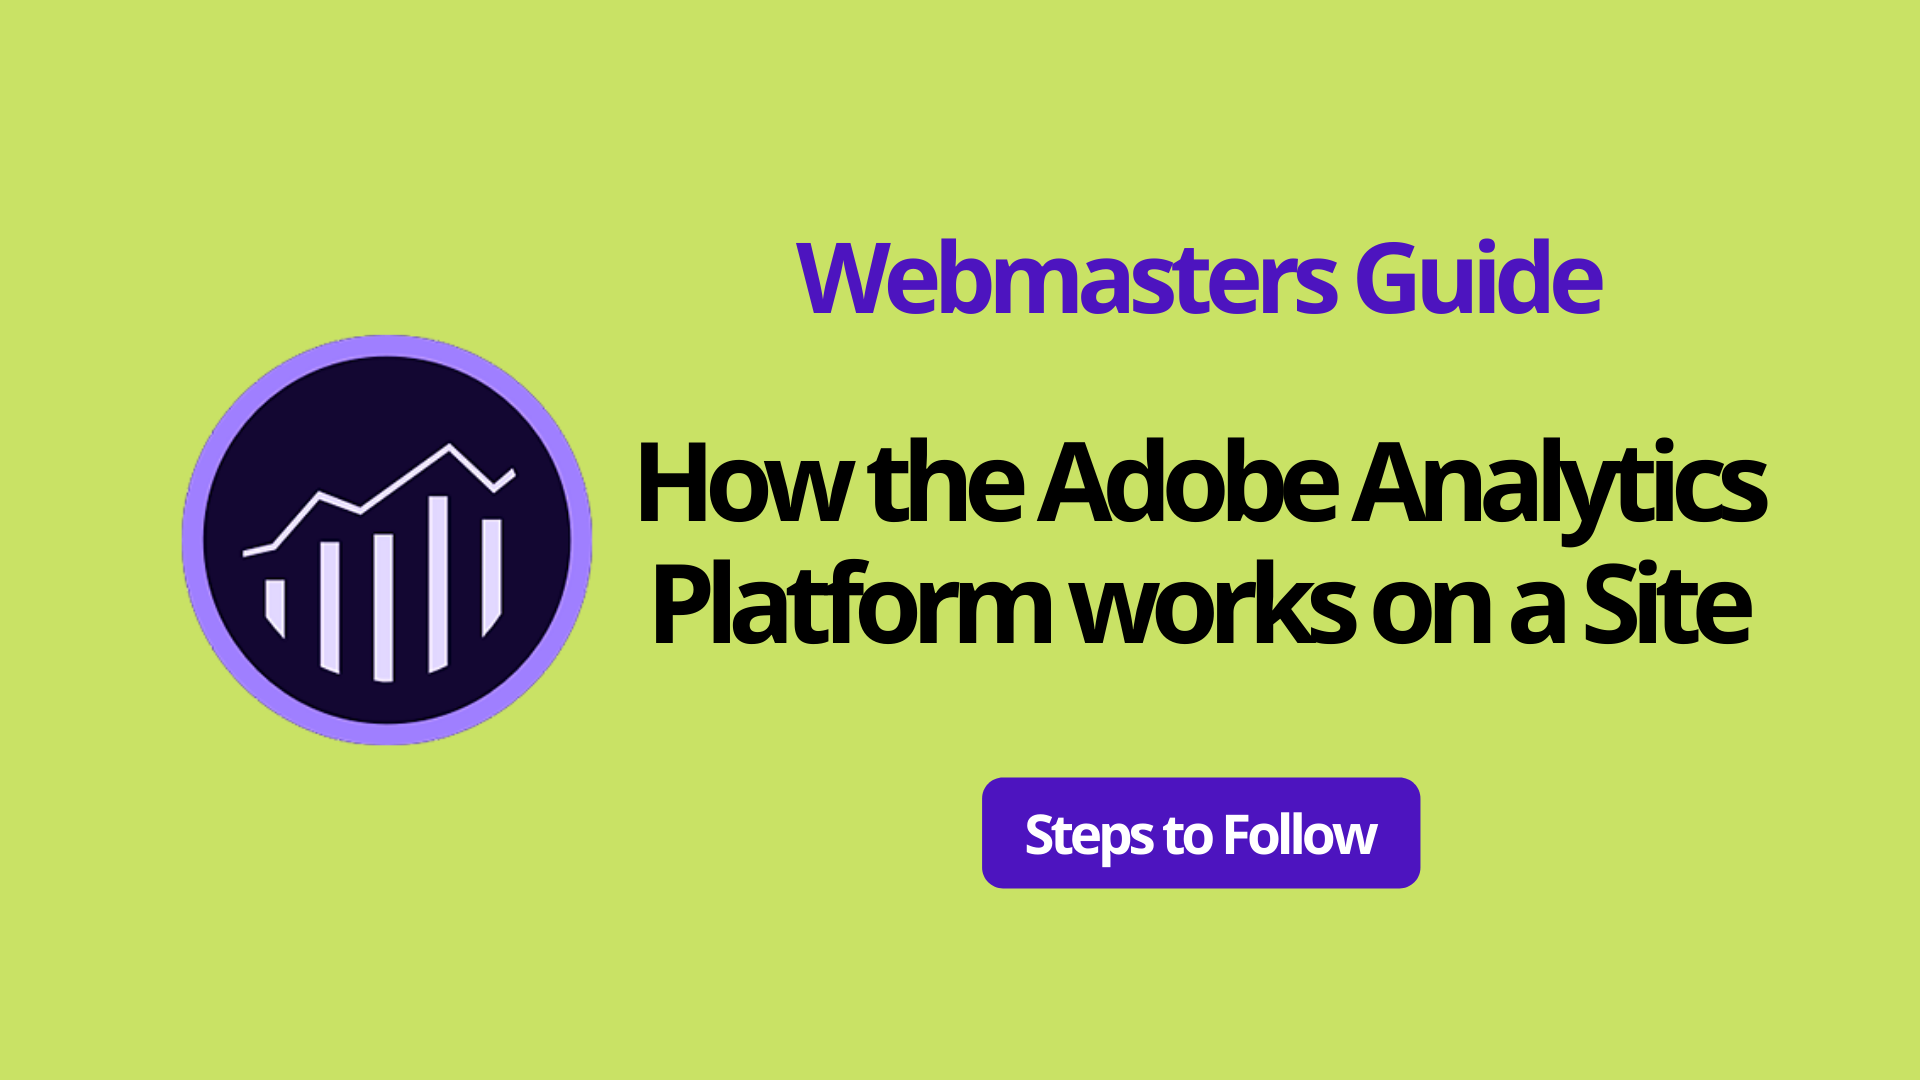 How does the Adobe Analytics Platform work?